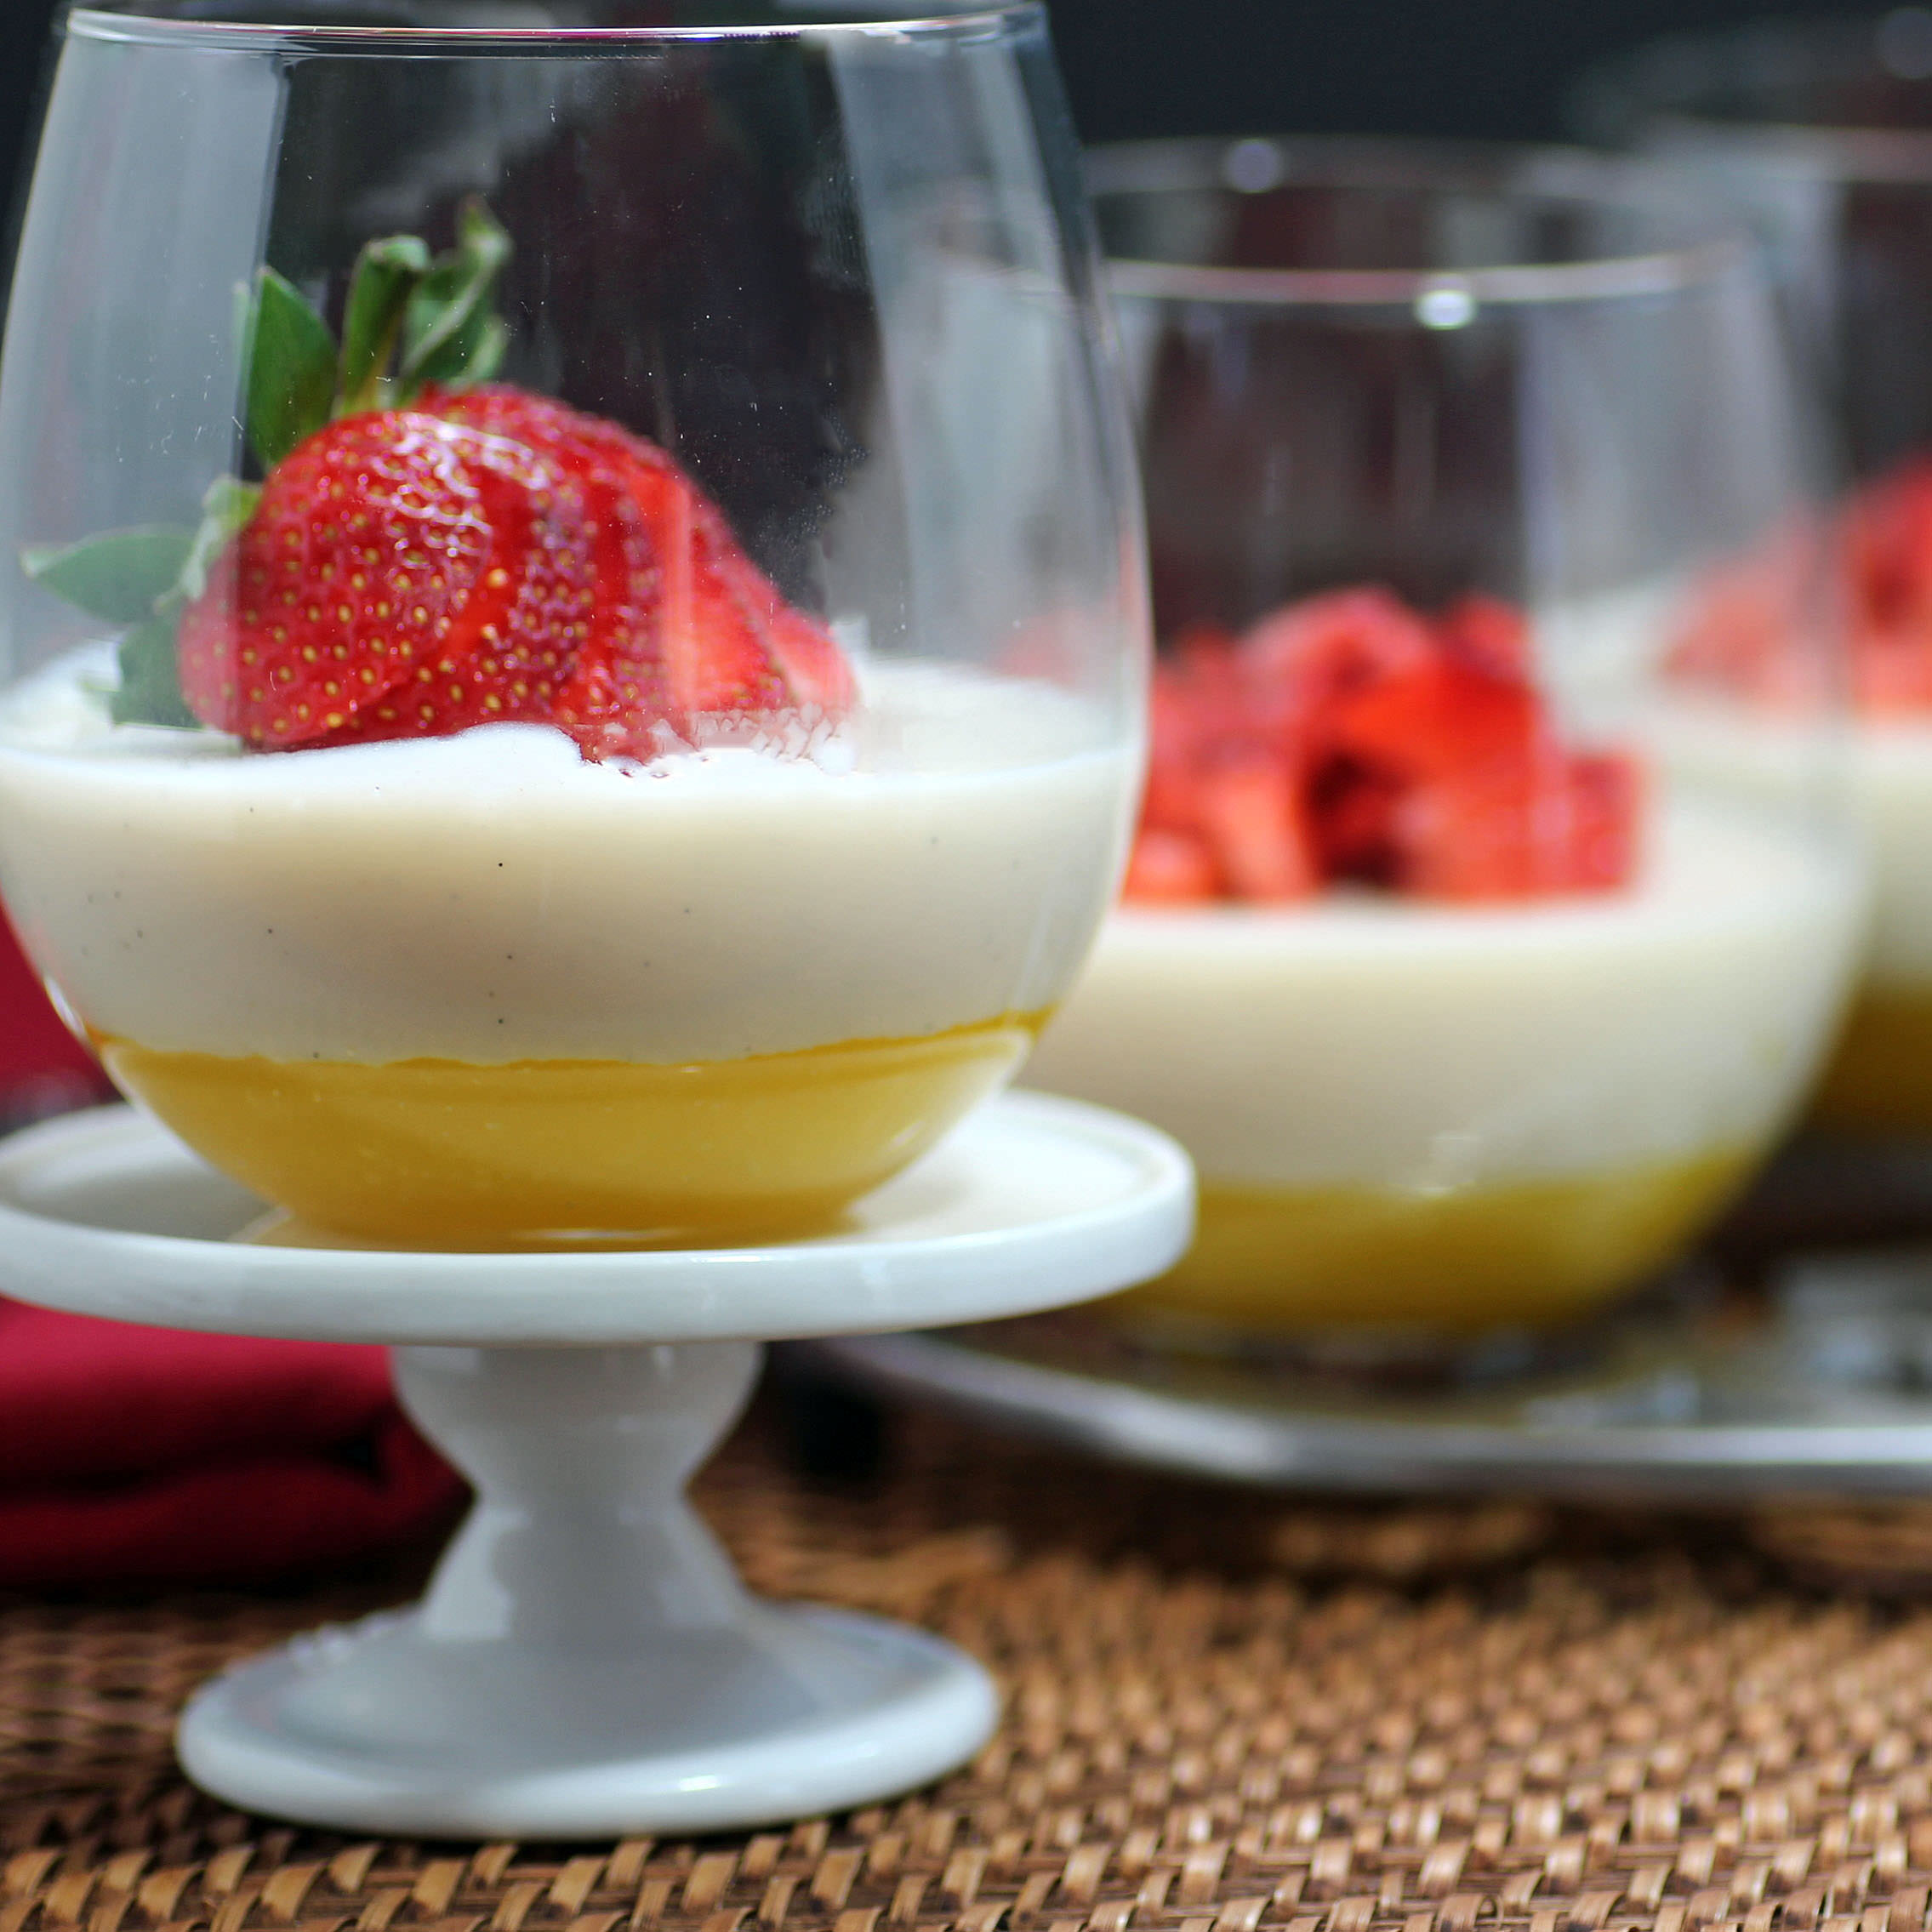 This Mango and Yogurt dessert is sure to be a hit. It's easy to make and oh so delicious.